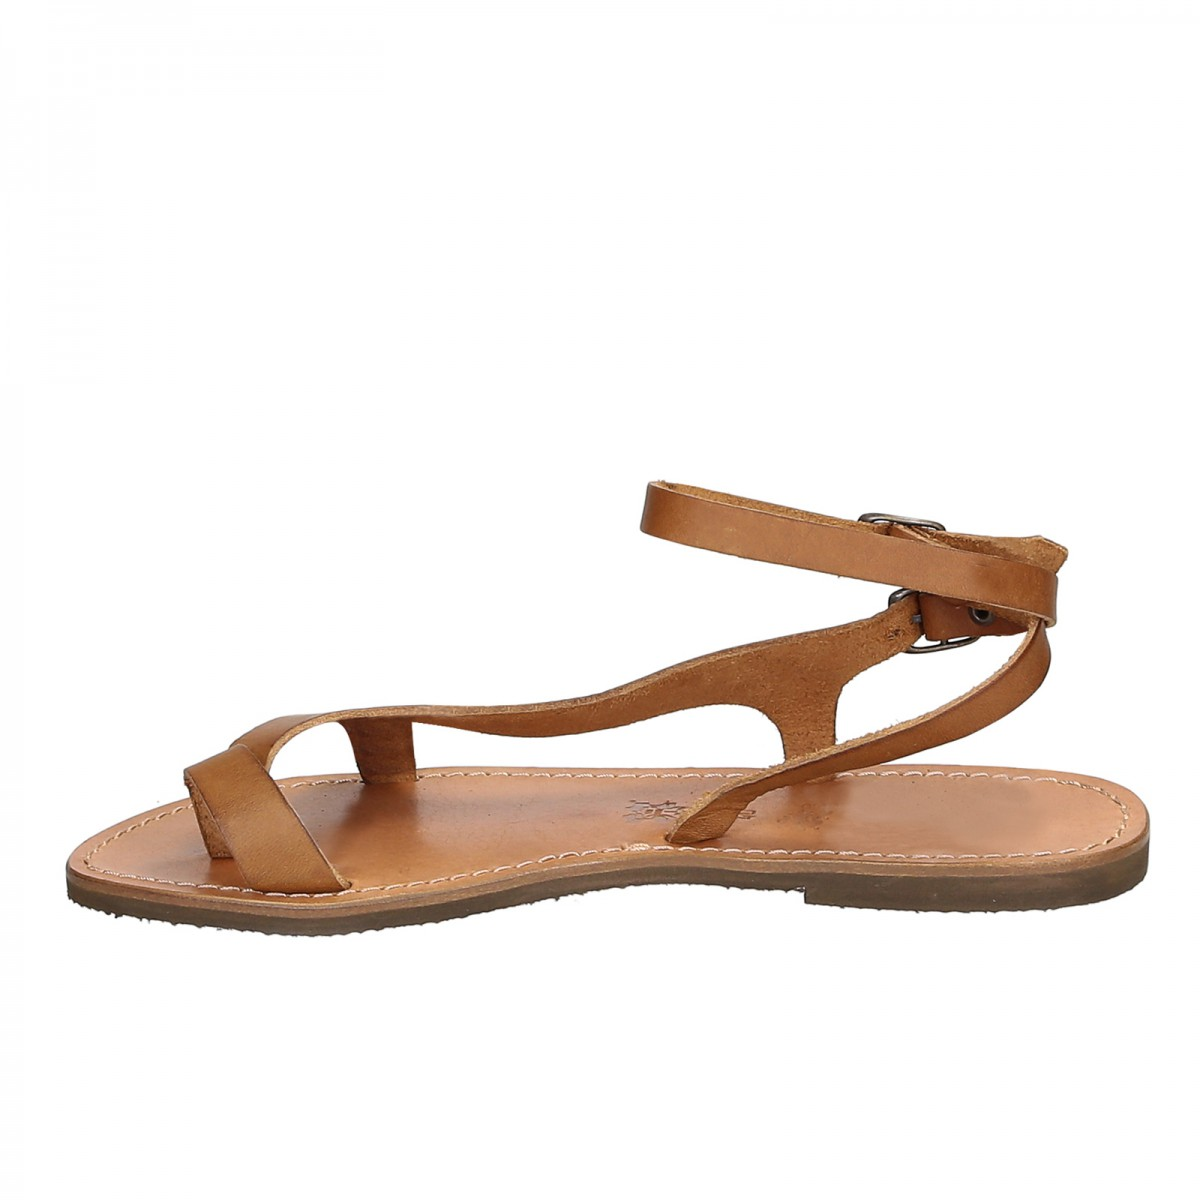 Tan Leather Thong Sandals For Women Handmade In Italy -1772